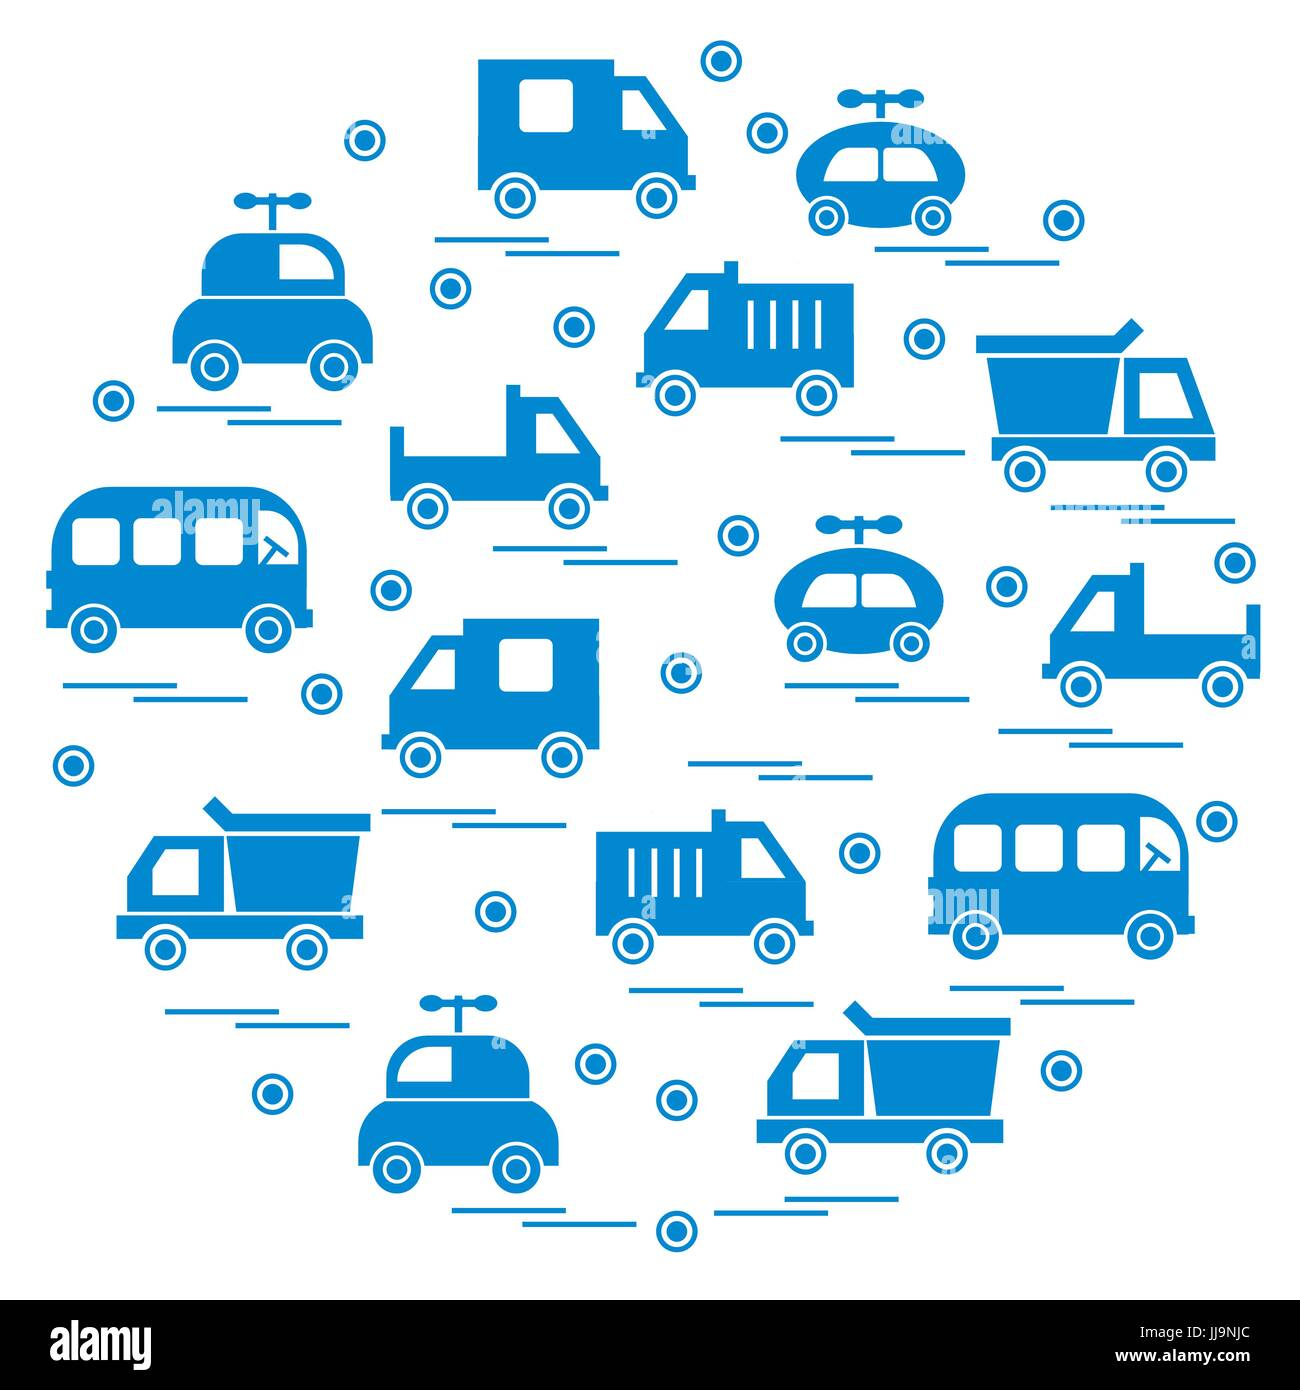 Cute vector illustration with baby cars arranged in a circle. Design for poster or print. - Stock Image